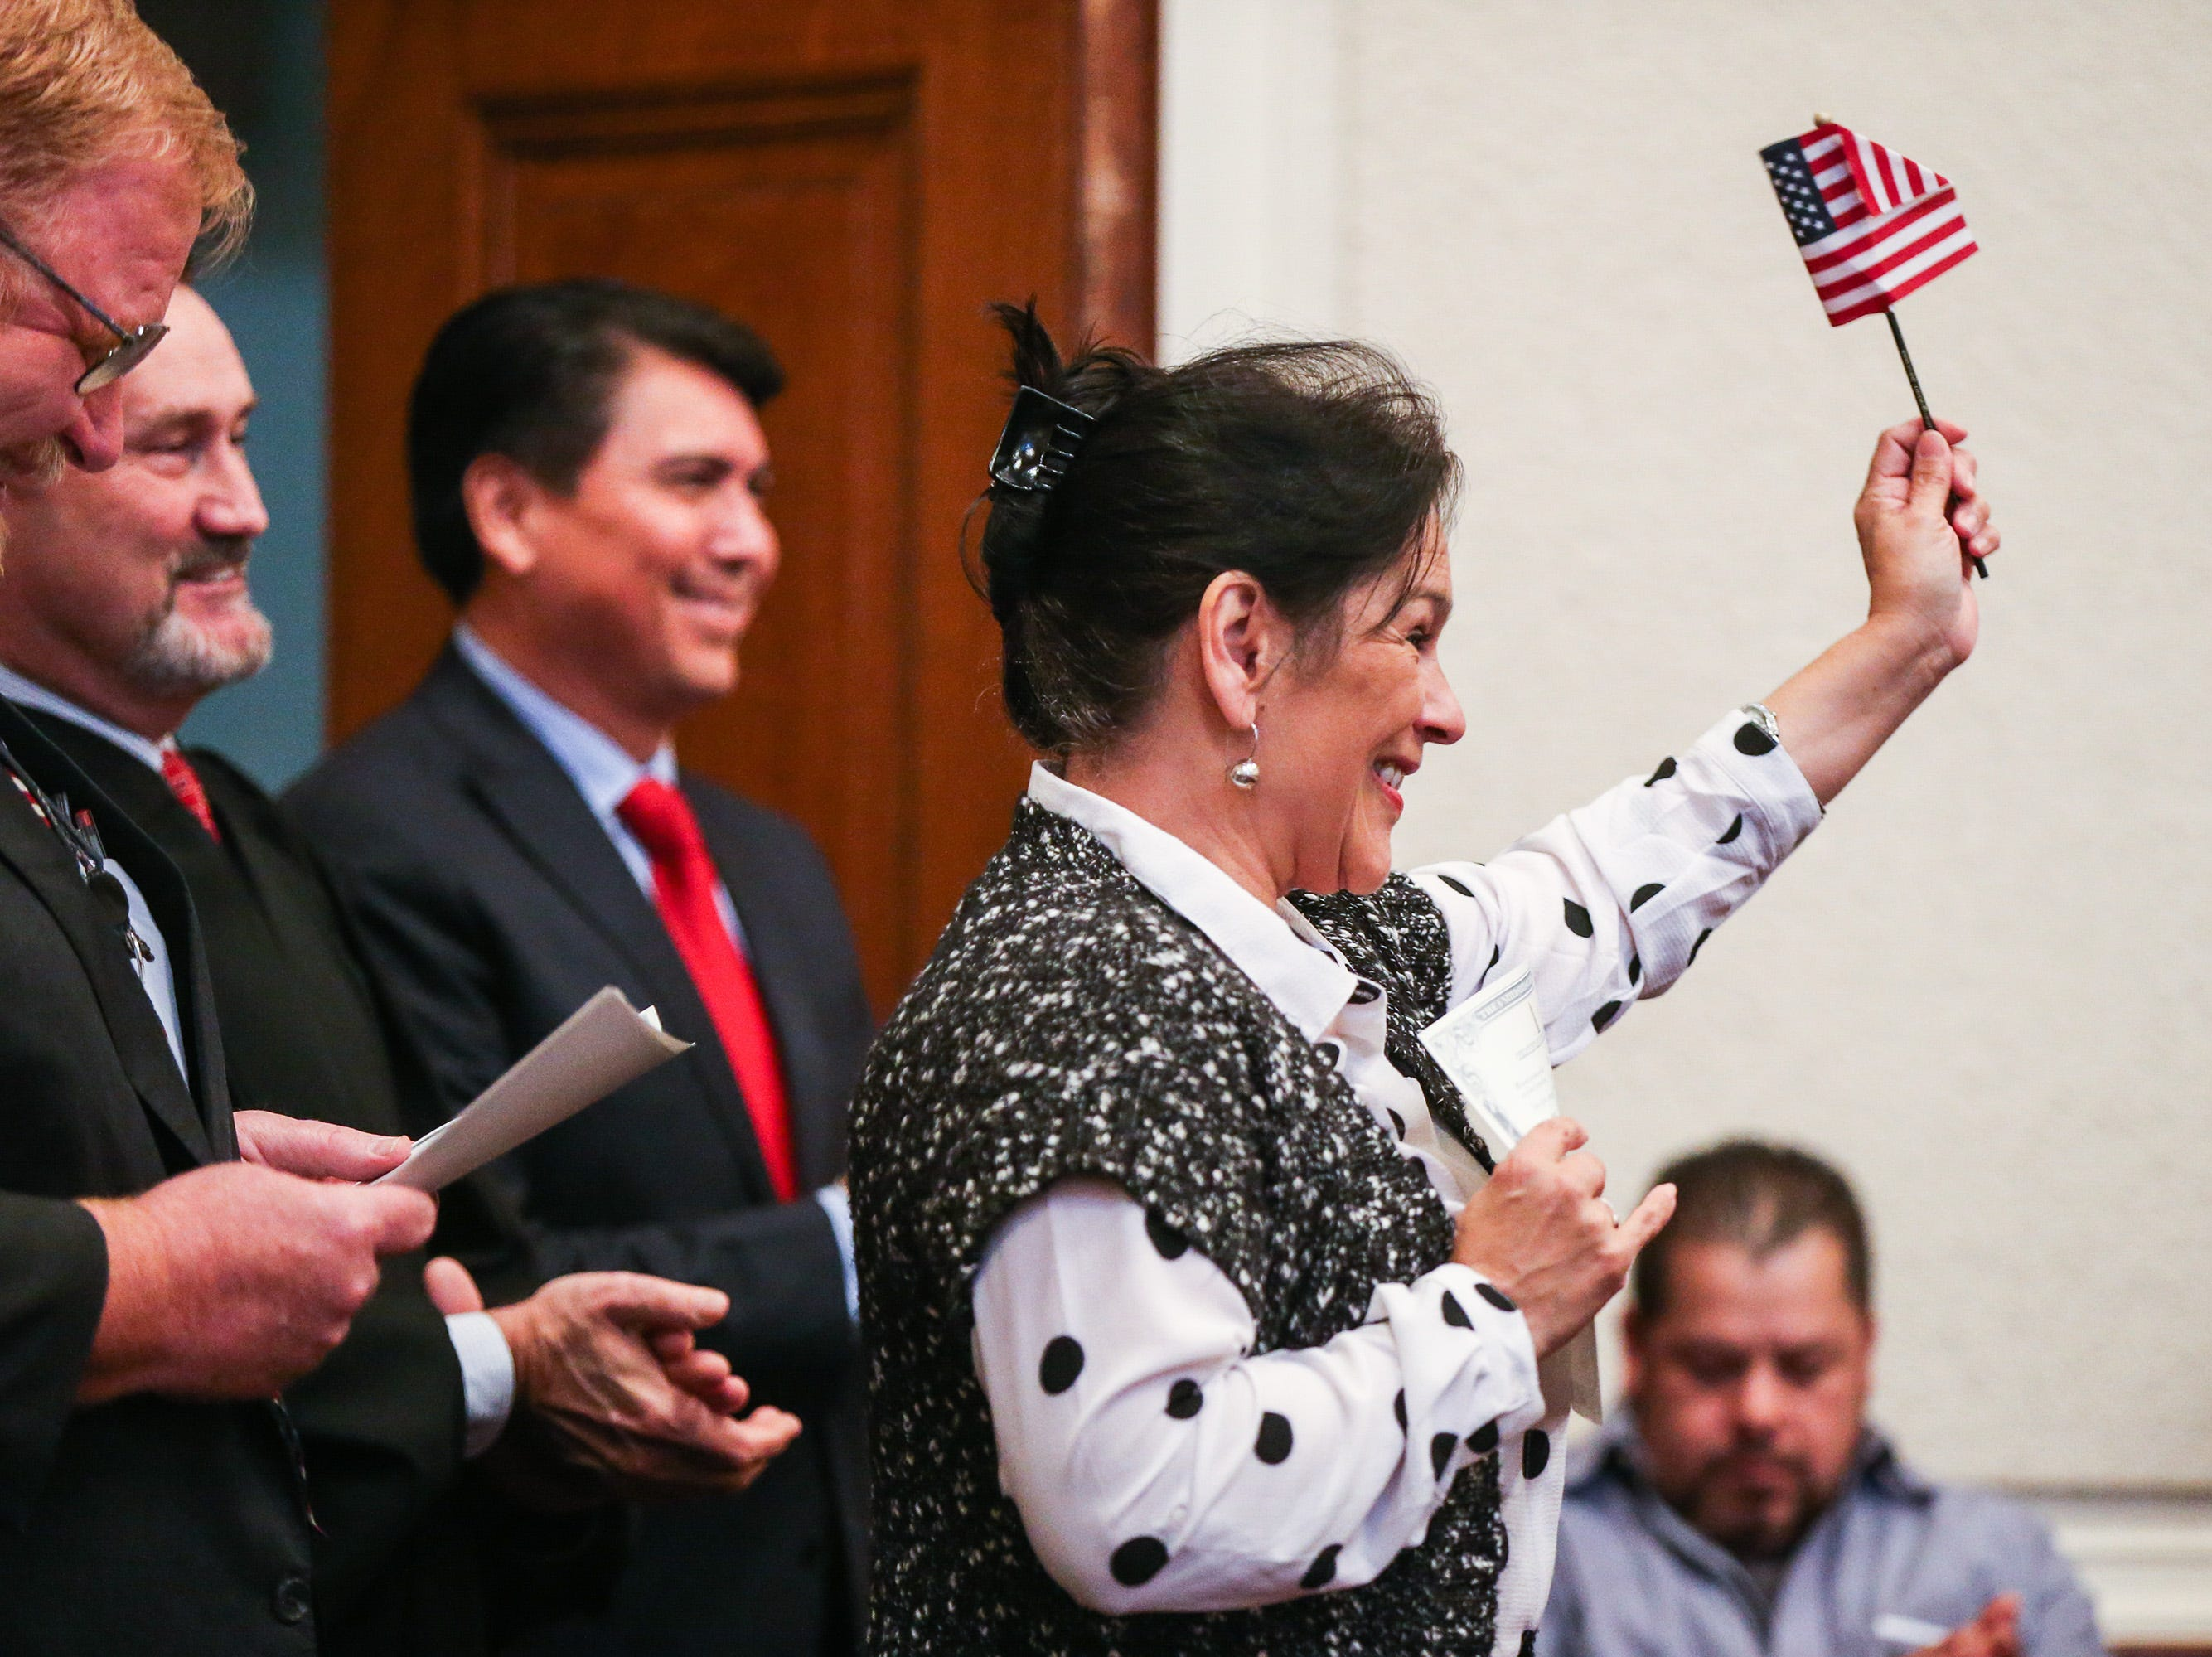 Christine Anita Sawyer waved a flag after she receives her certificate during the naturalization ceremony Wednesday, Jan. 8, 2019, at the O.C. Fisher Federal Building.